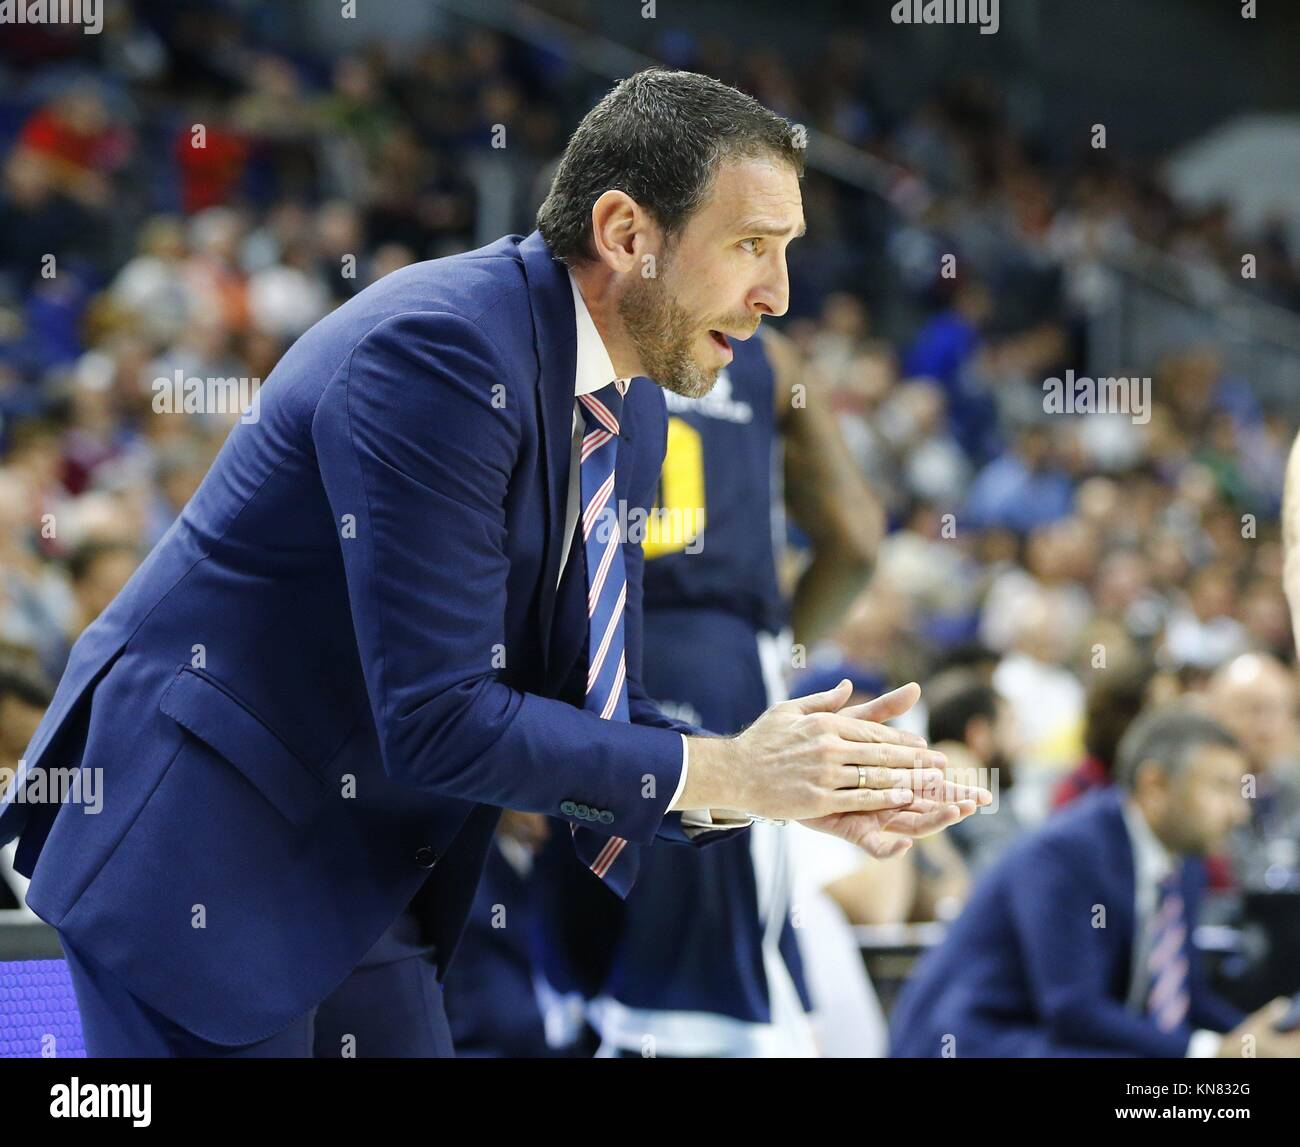 Madrid Spain 10th Dec 2017 Ucam Murcia S Head Coach Ibon Navarro